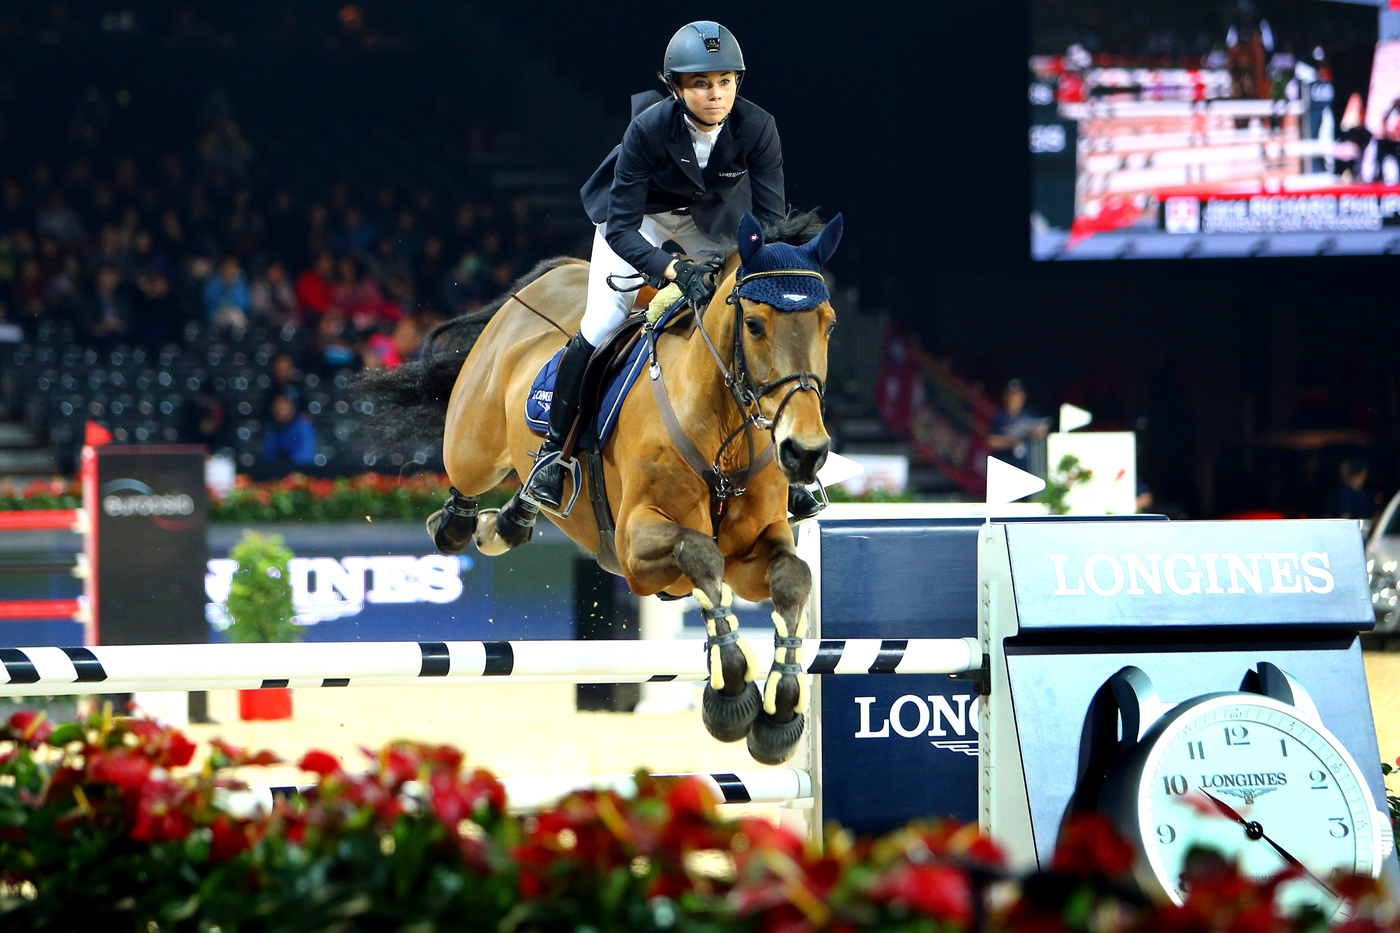 Longines Show Jumping Event: Brilliant moments at the Longines Hong Kong Masters 2014 6